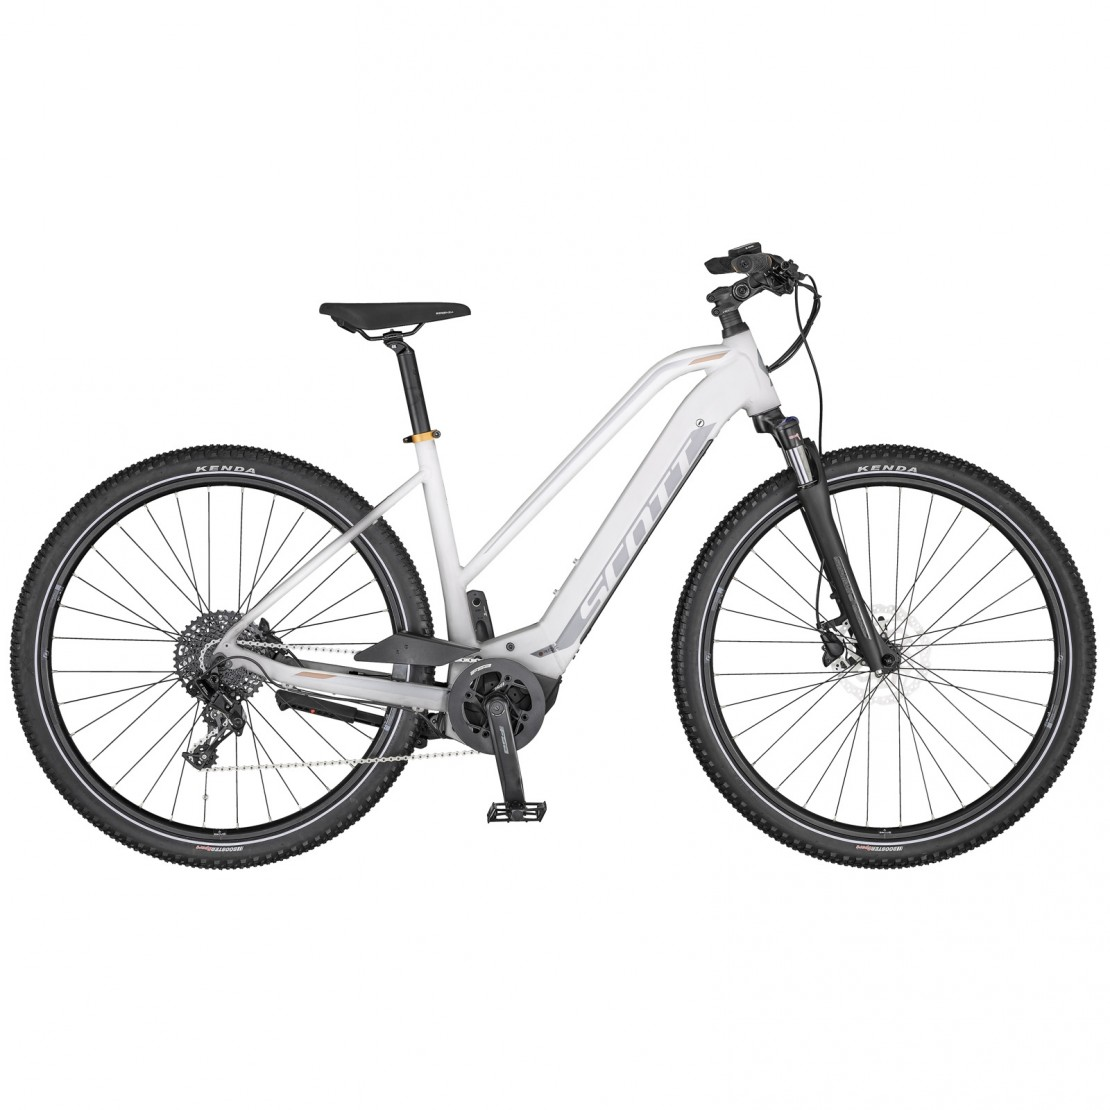 Scott Sub Cross eRide 10 Lady 2020 Electric Bike